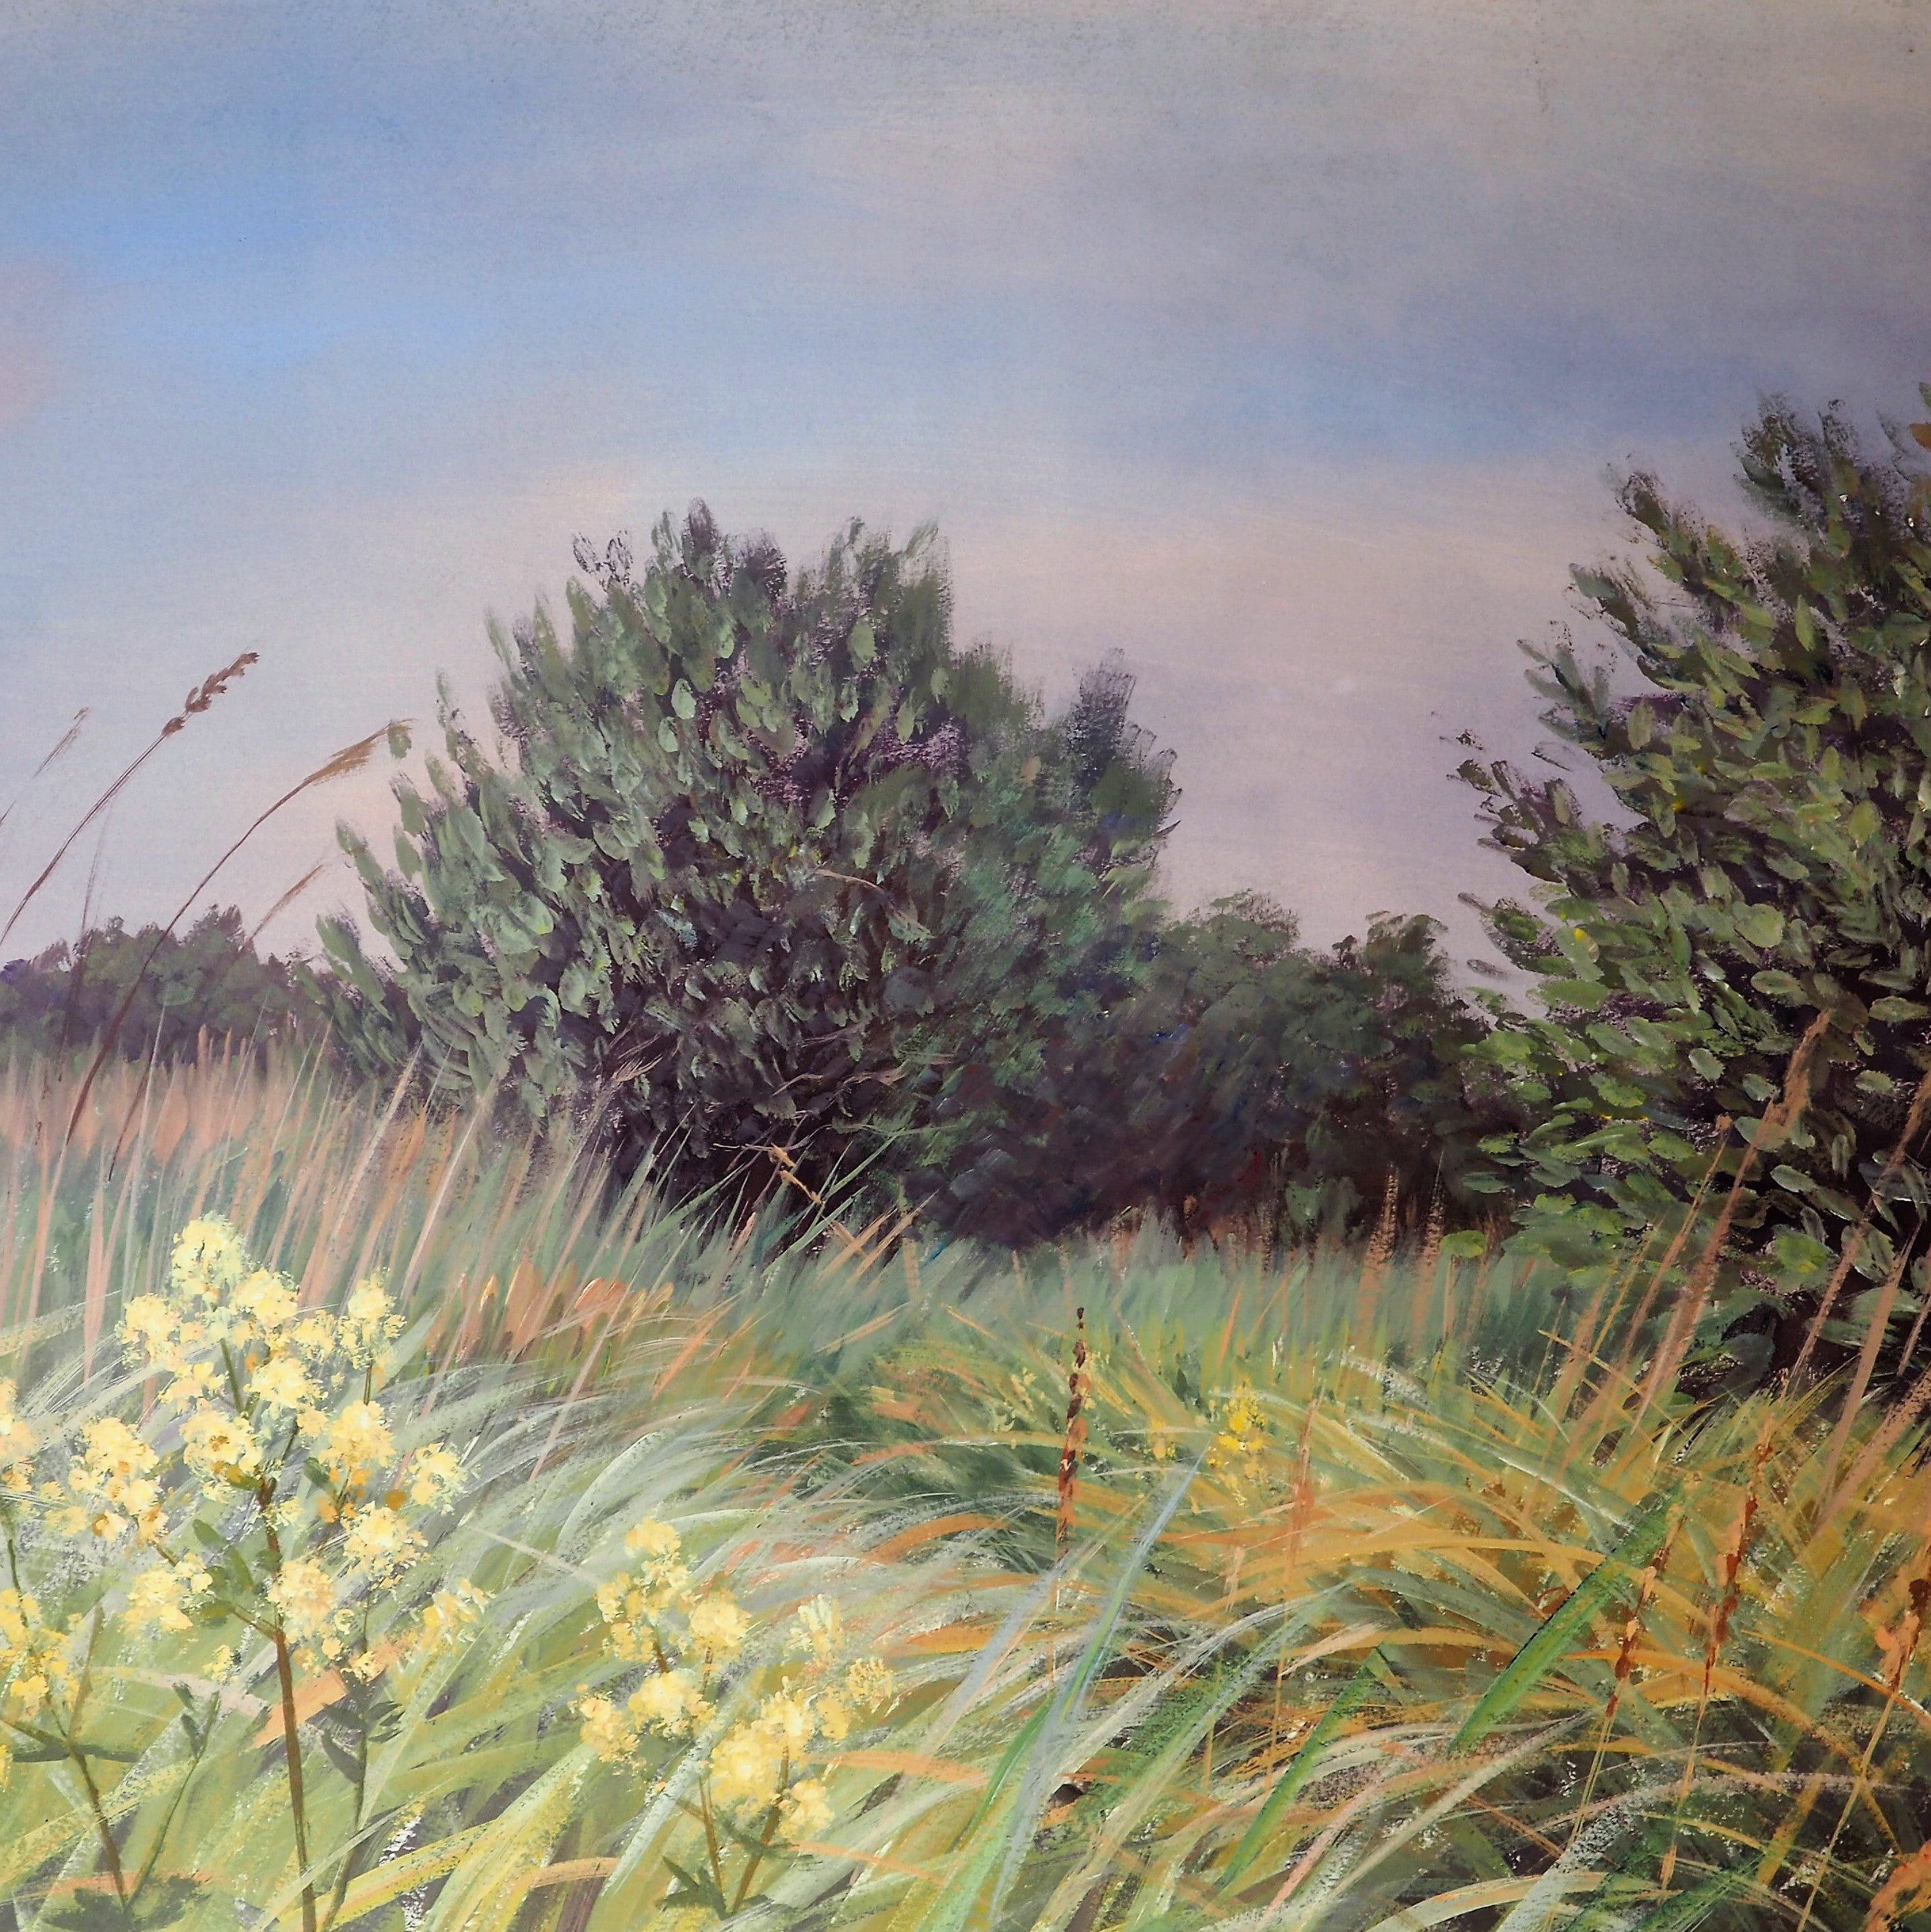 Day, Anthony - 'Fen Walk In June' | Anthony Day | Primavera Gallery